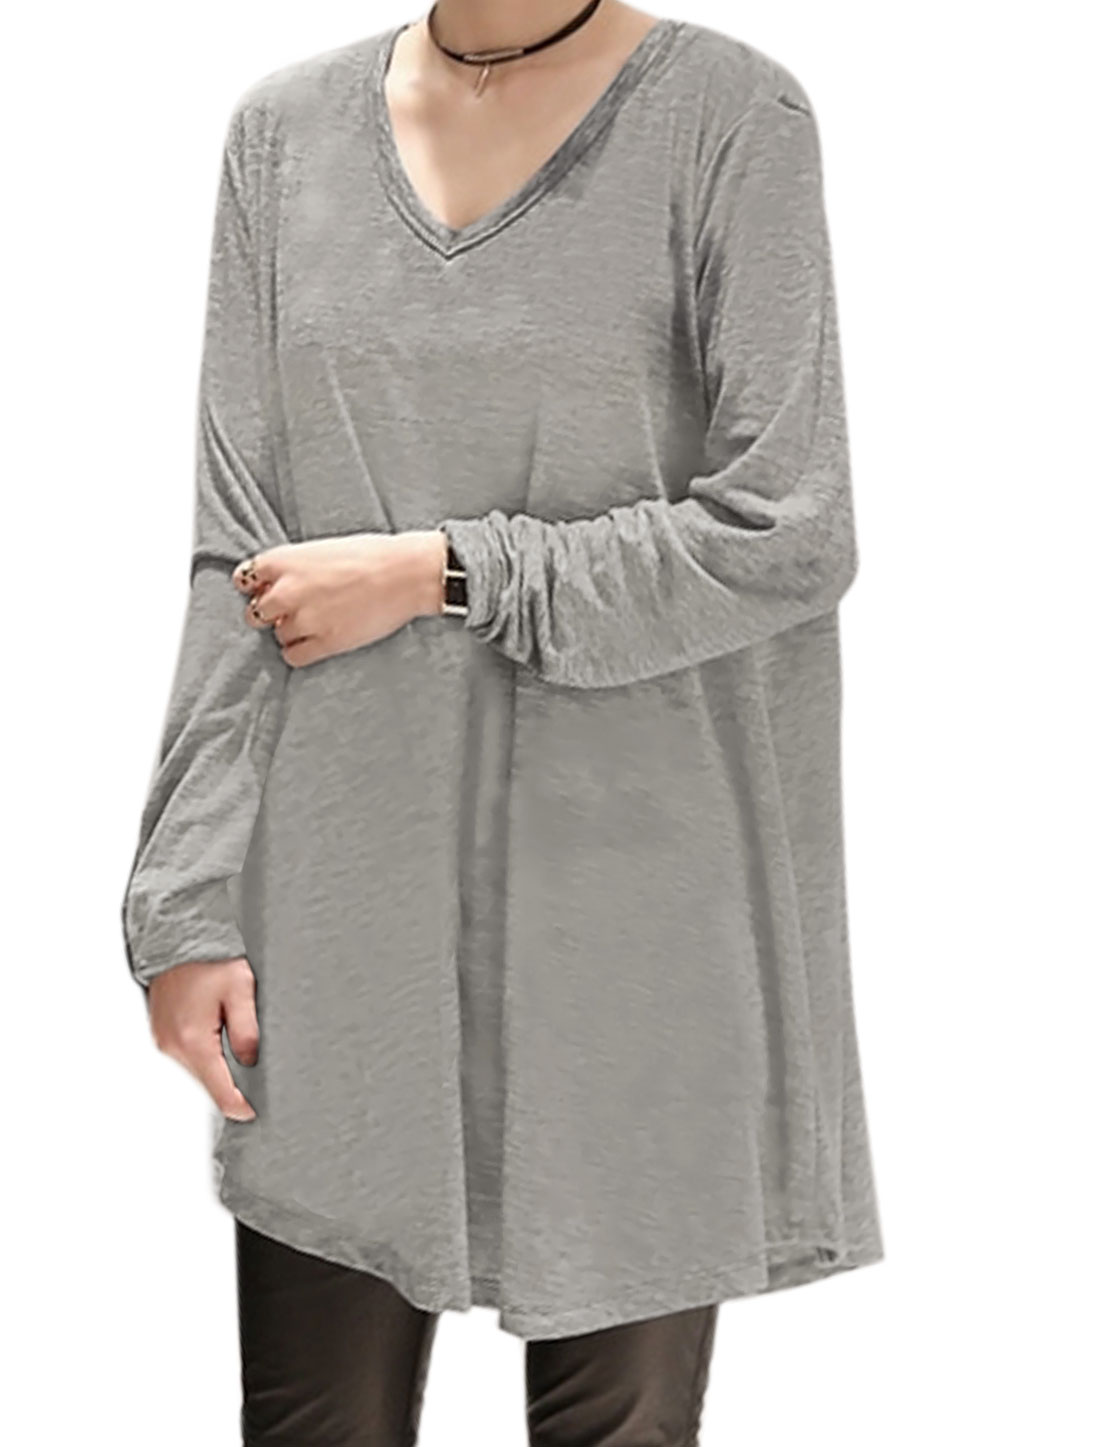 Ladies V Neck Long Sleeves Casual High Low Hem Loose Tunic Top Gray XS